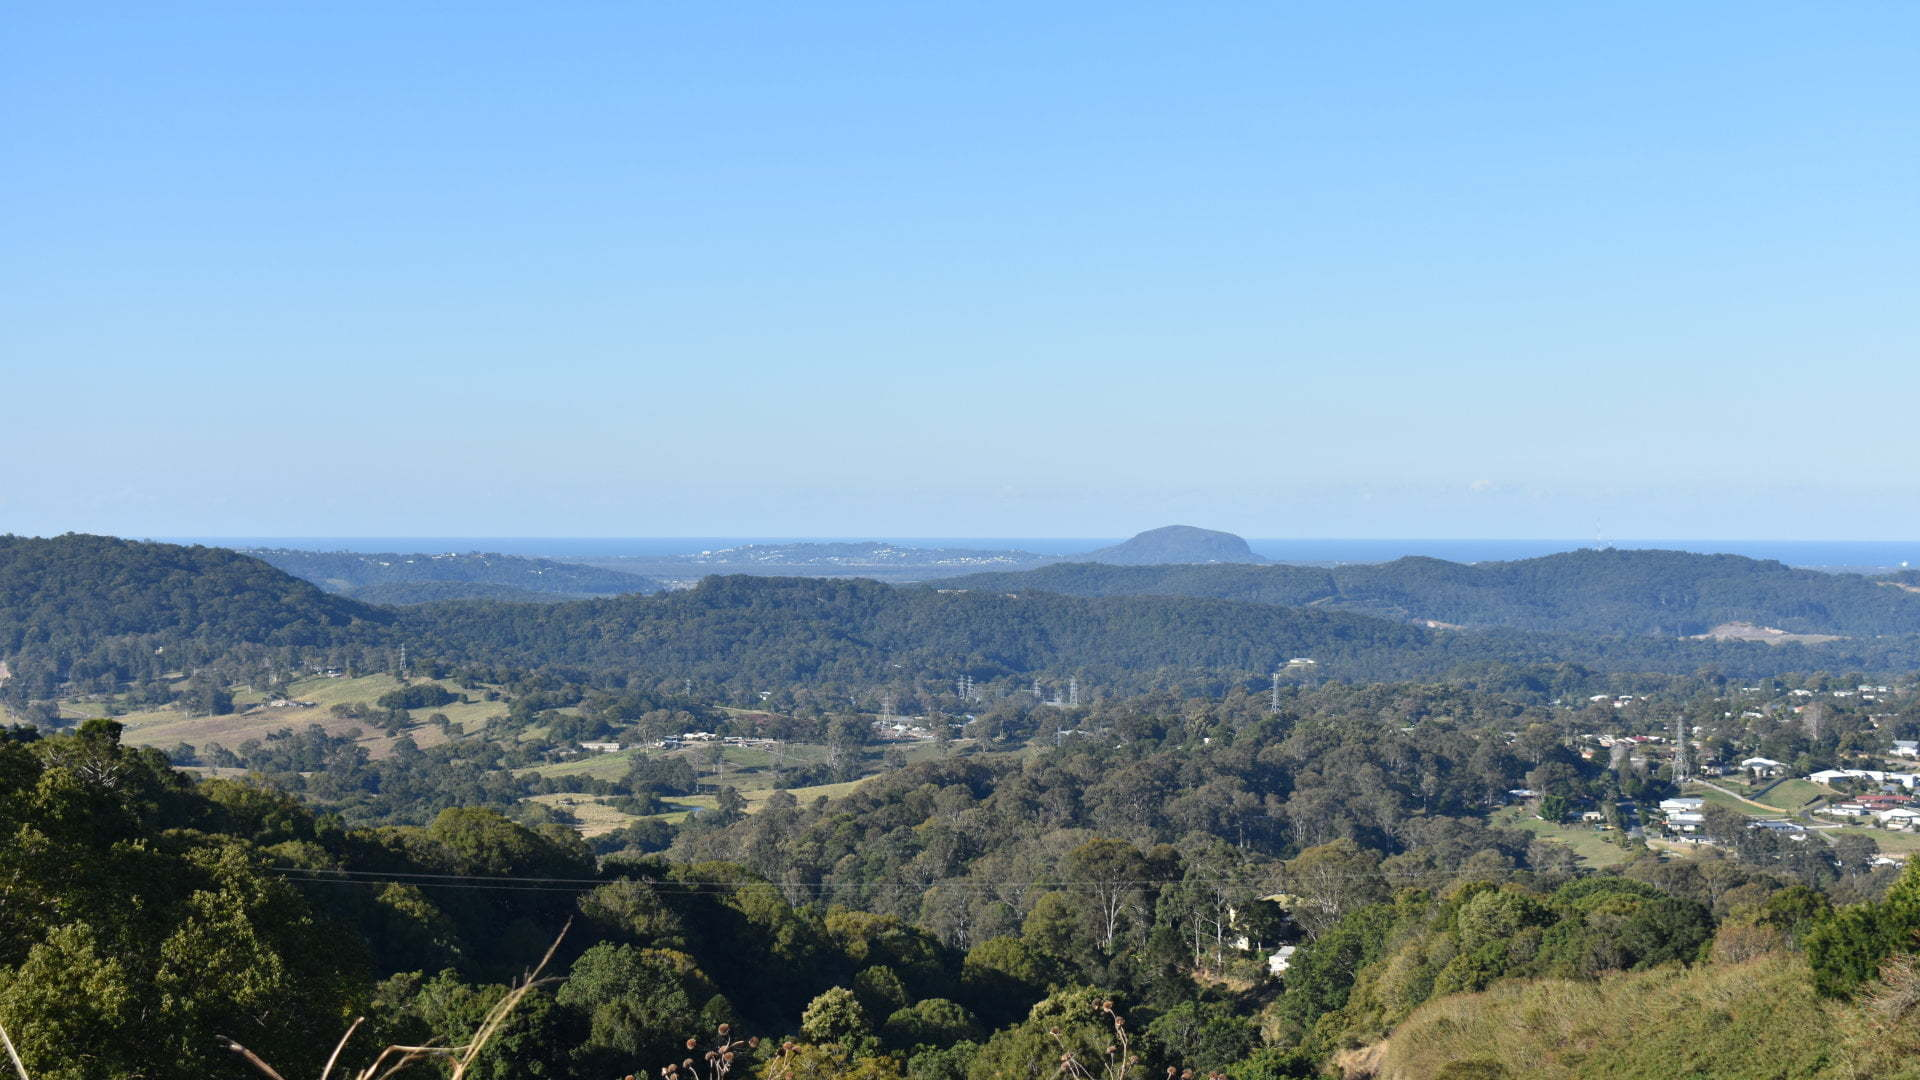 View from Kanyana Park, located between Nambour and Mapleton looking towards the coast